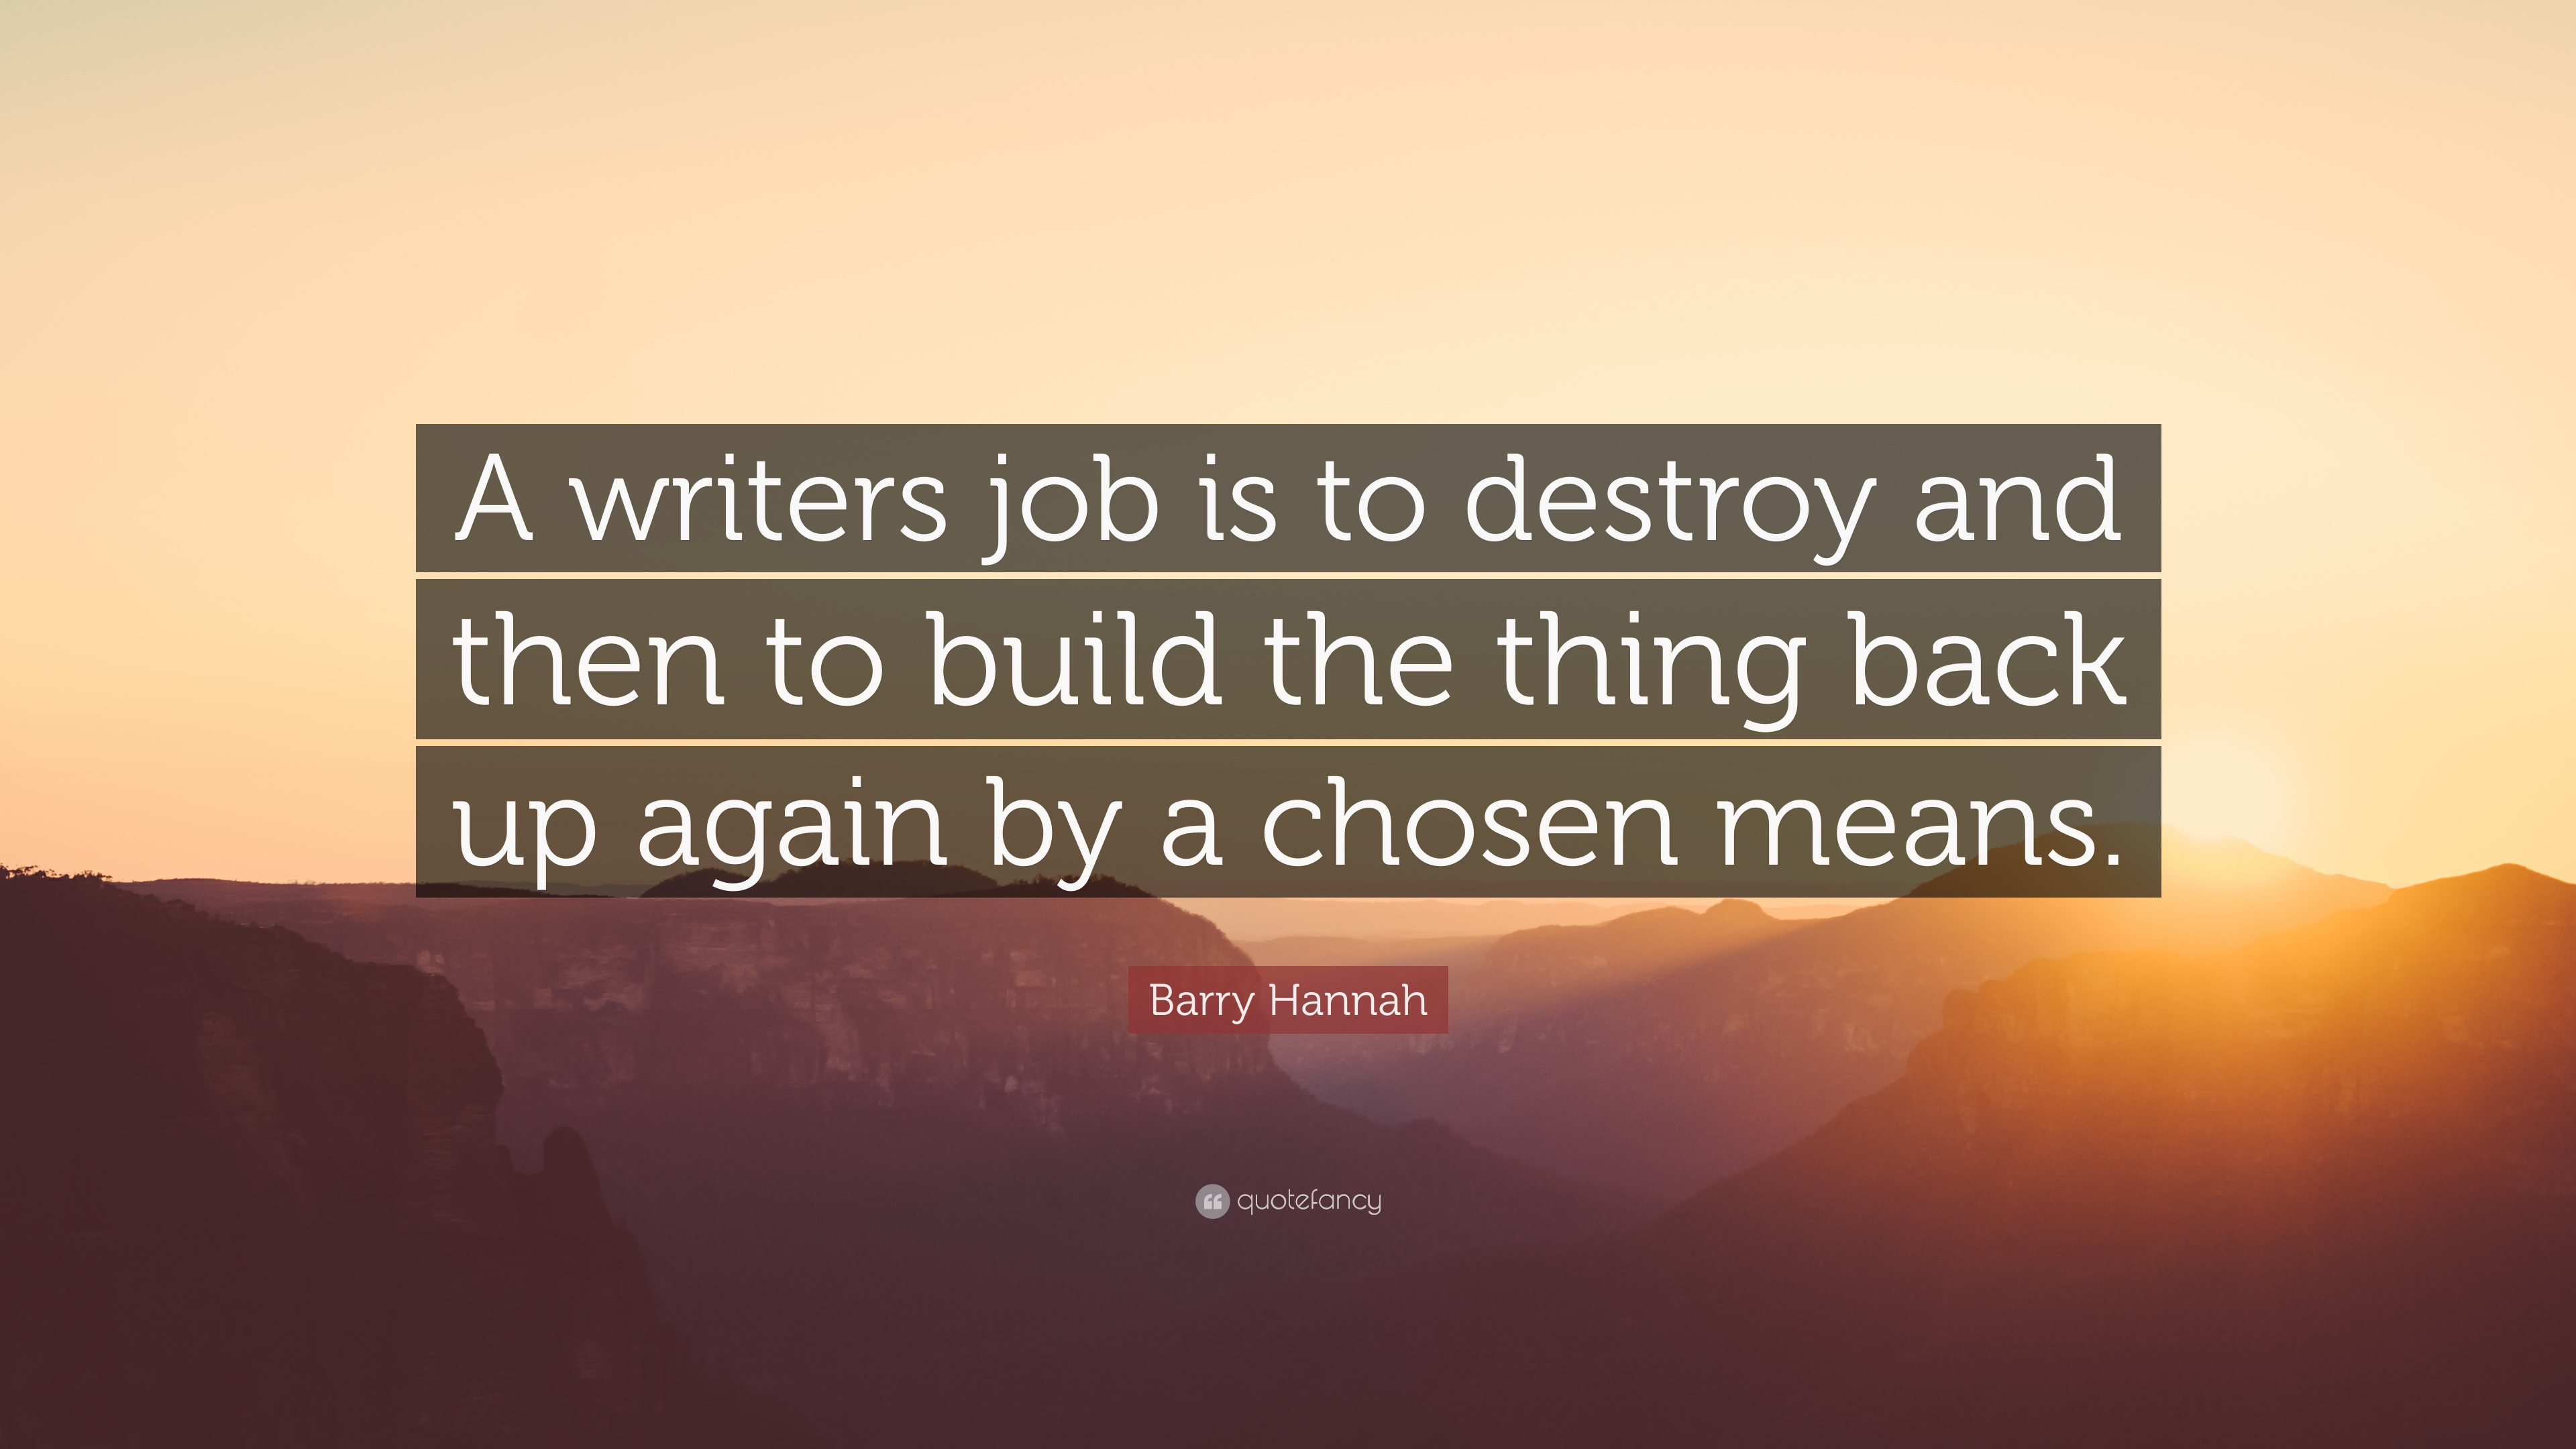 barry hannah quotes quotefancy barry hannah quote a writers job is to destroy and then to build the